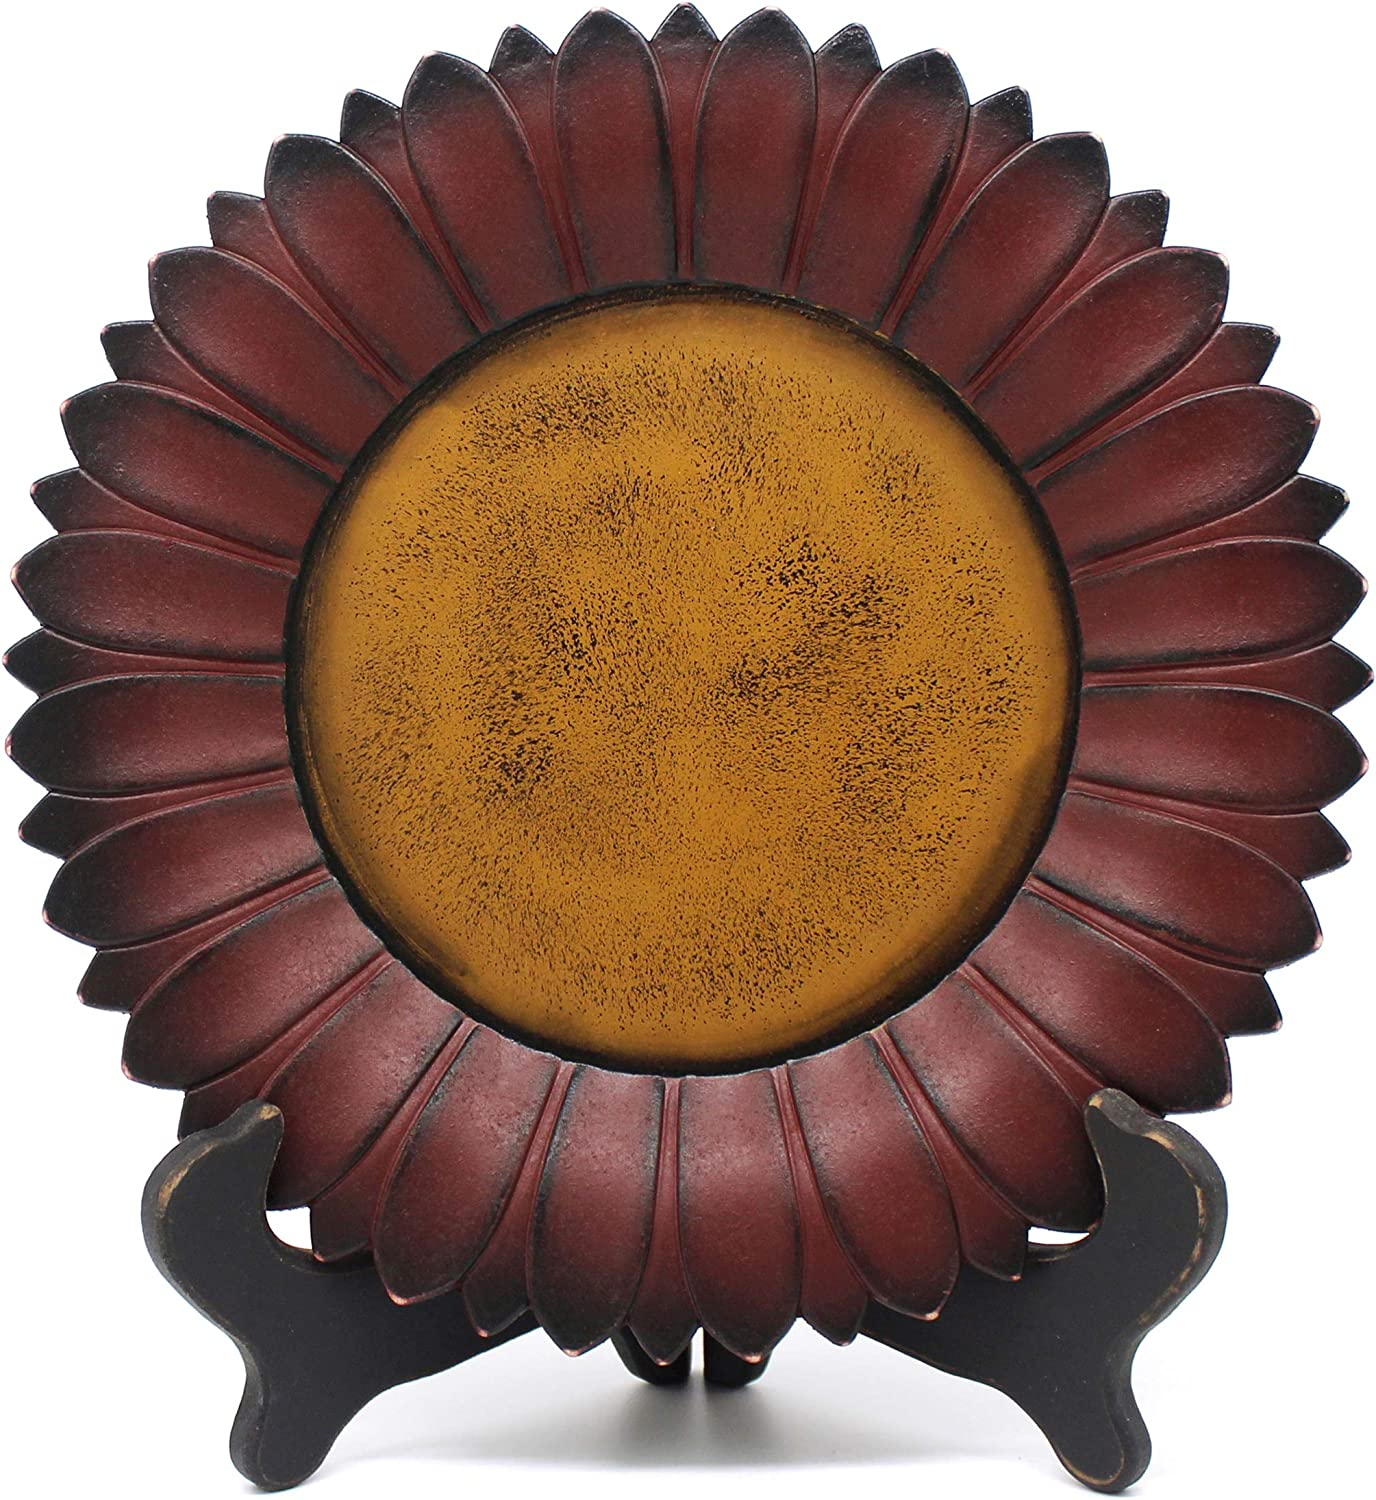 11 Inch CVHOMEDECO Burgundy Plate Only Sunflower Shape Plate Country Vintage Display Wooden Plate Home and Office D/écor Art